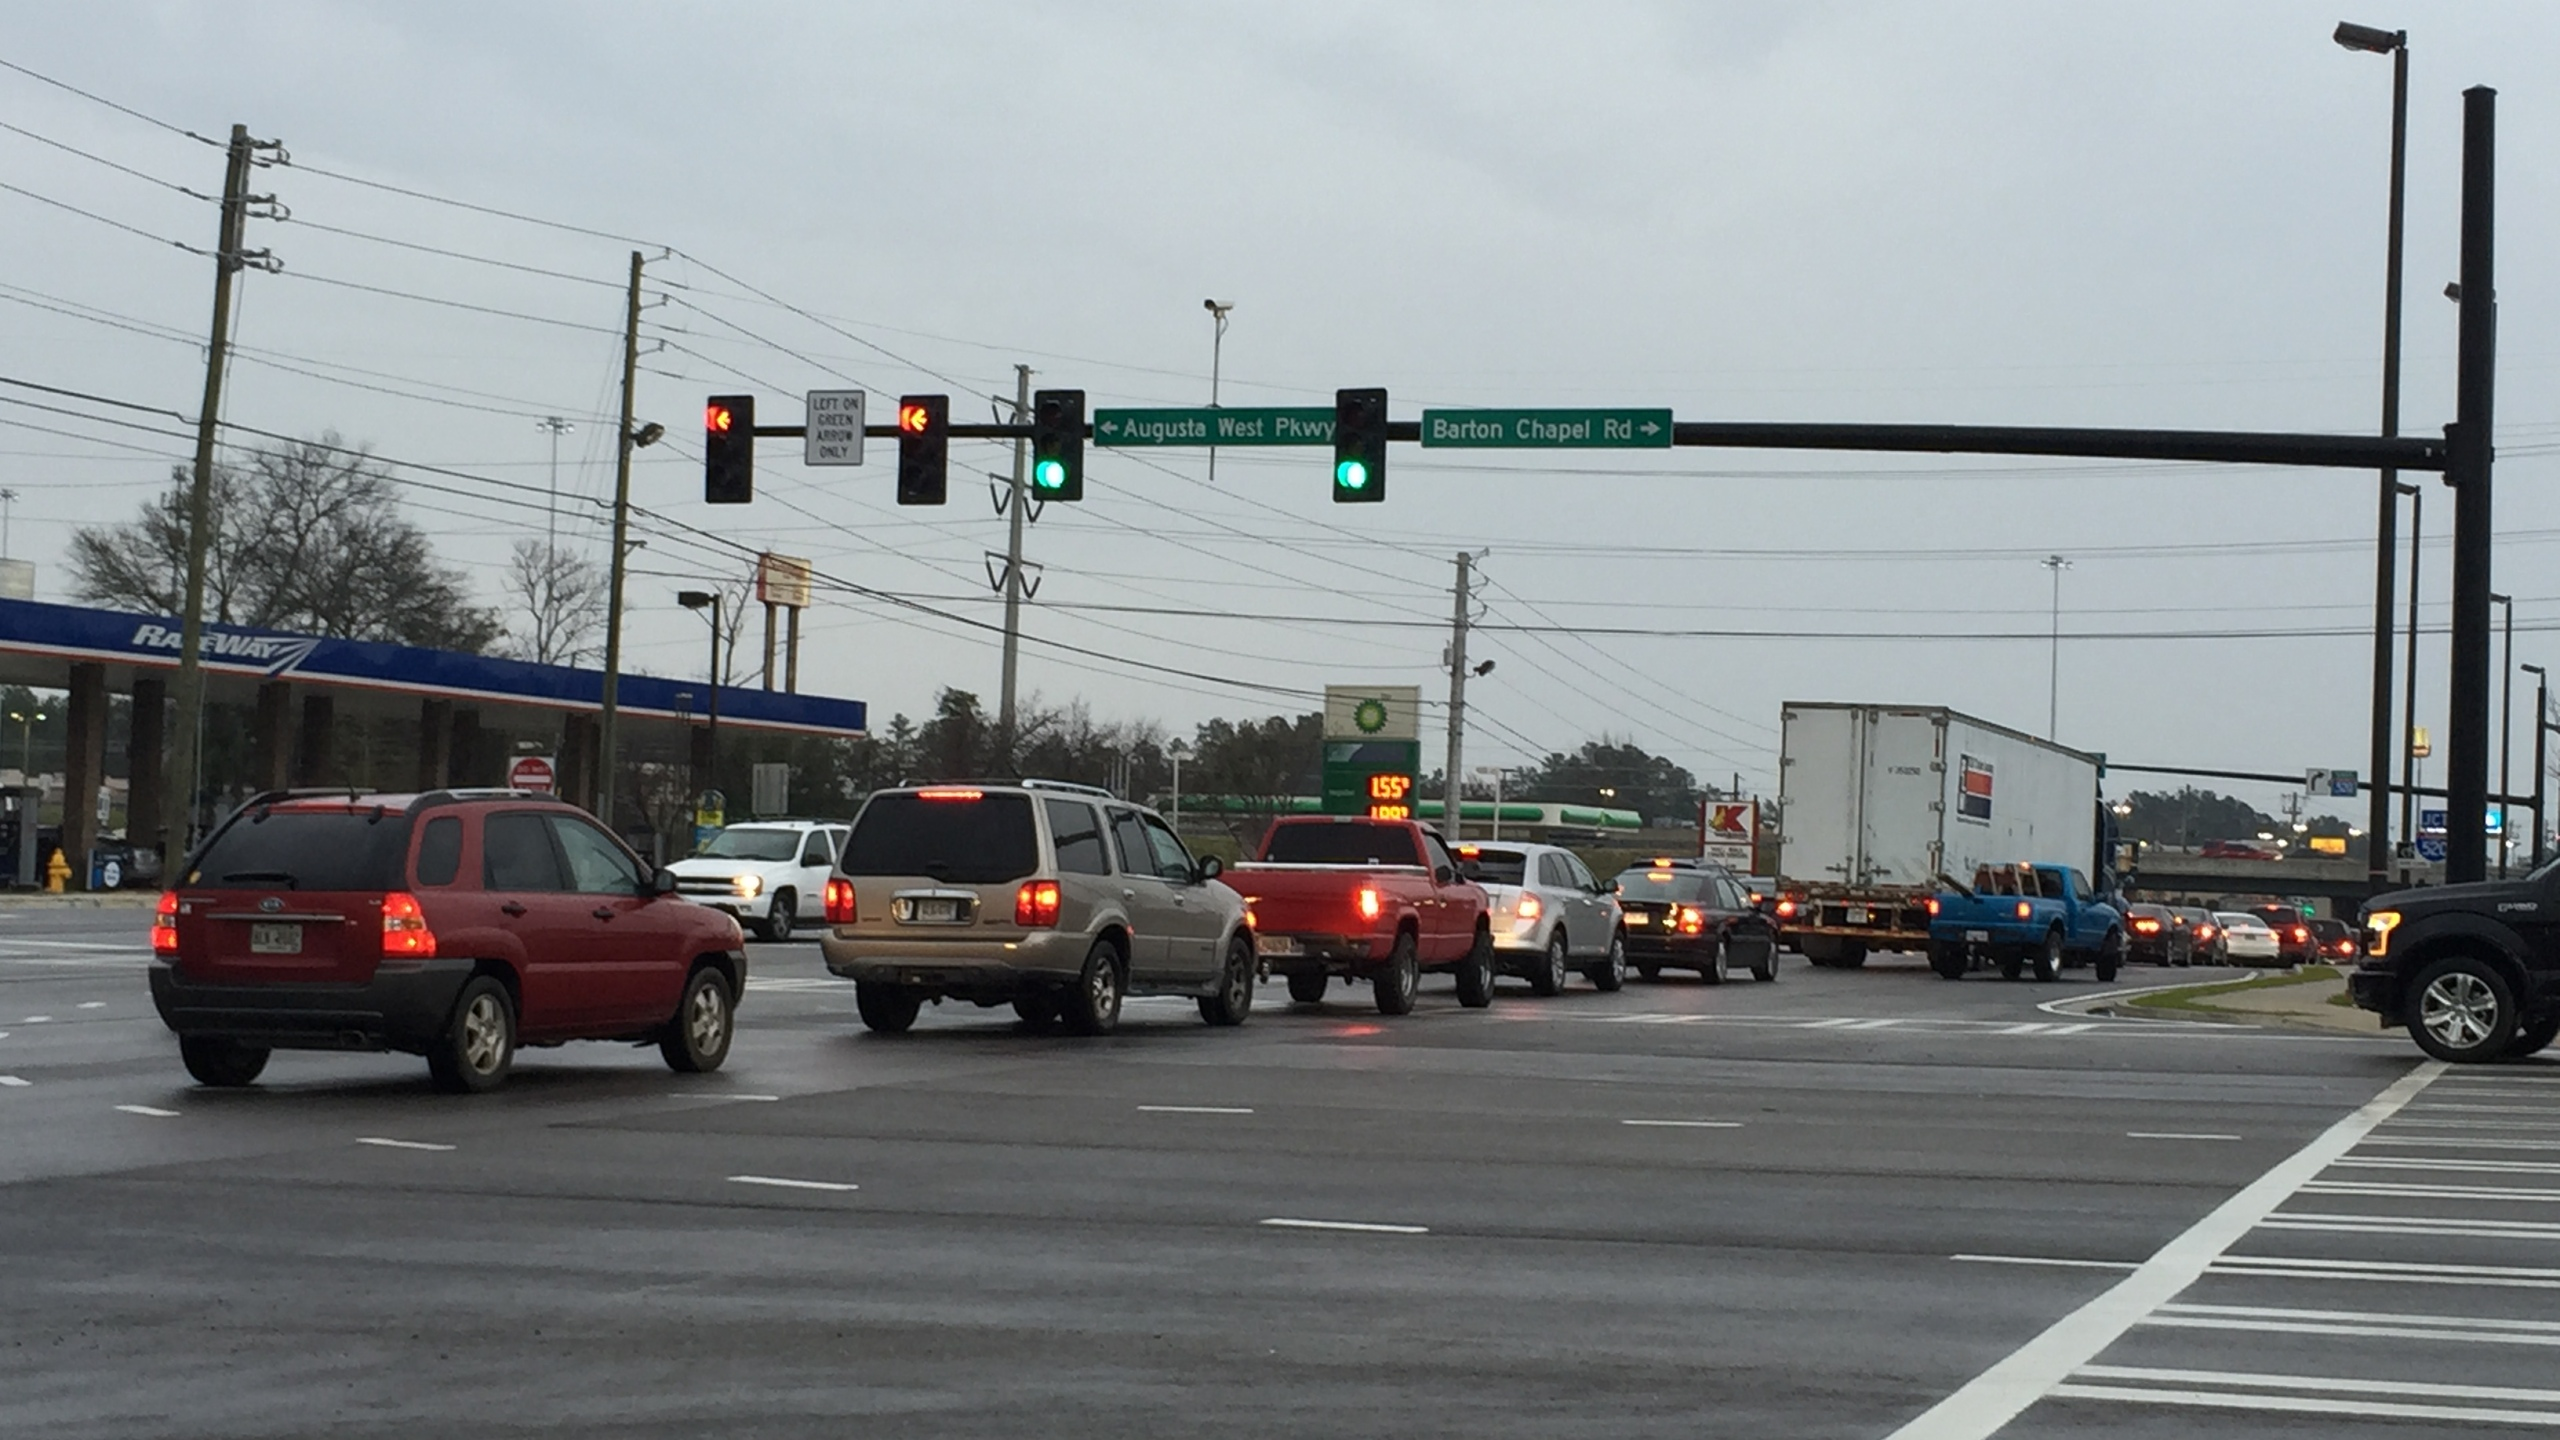 Traffic signals on Wrightsboro Rd. have not been synced since construction wrapped up._122077